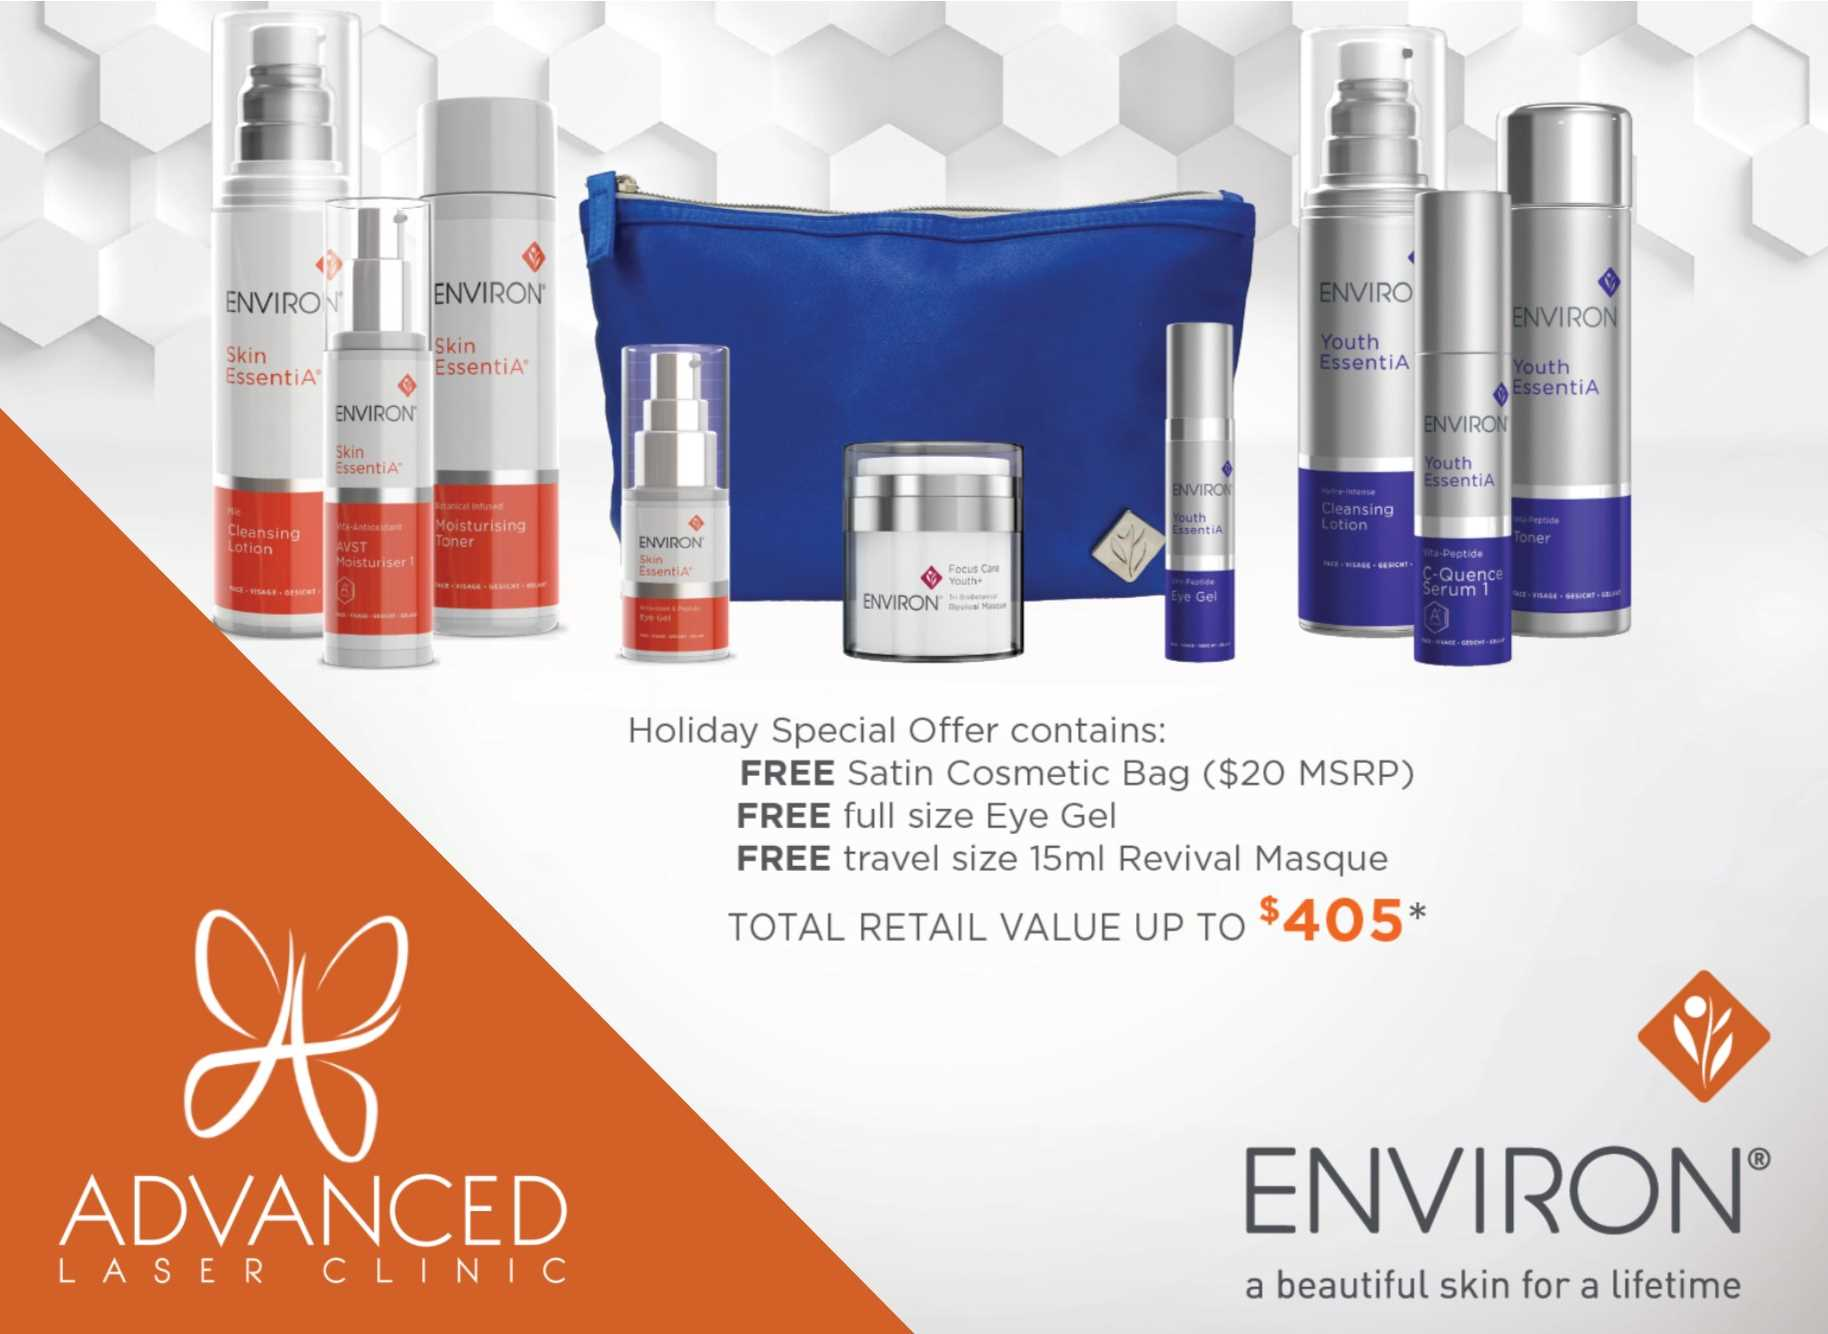 Flash Sale on Skin Rejuvenation and Laser Hair Removal Springfield MO - Environ Holiday Bag